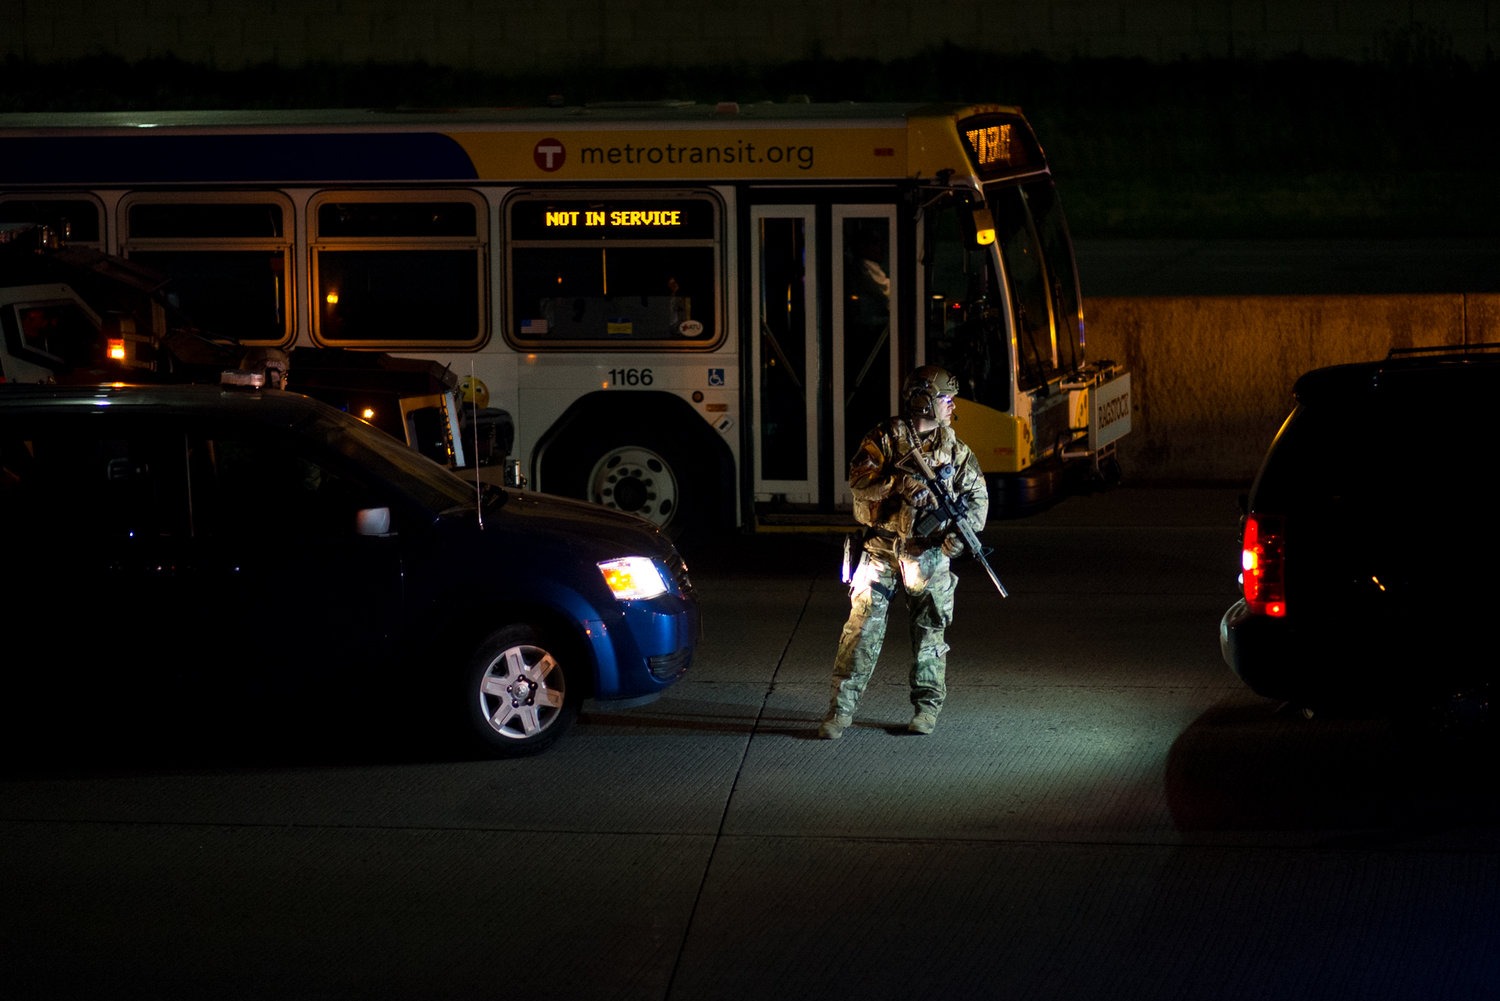 An armed officer stands on Interstate 95 in St. Paul as police break up a protest on the interstate on June 16, 2017. Protesters shut down the interstate after Jeronimo Yanez was found not guilty of second-degree manslaughter for the killing of Philando Castile in July 2016.